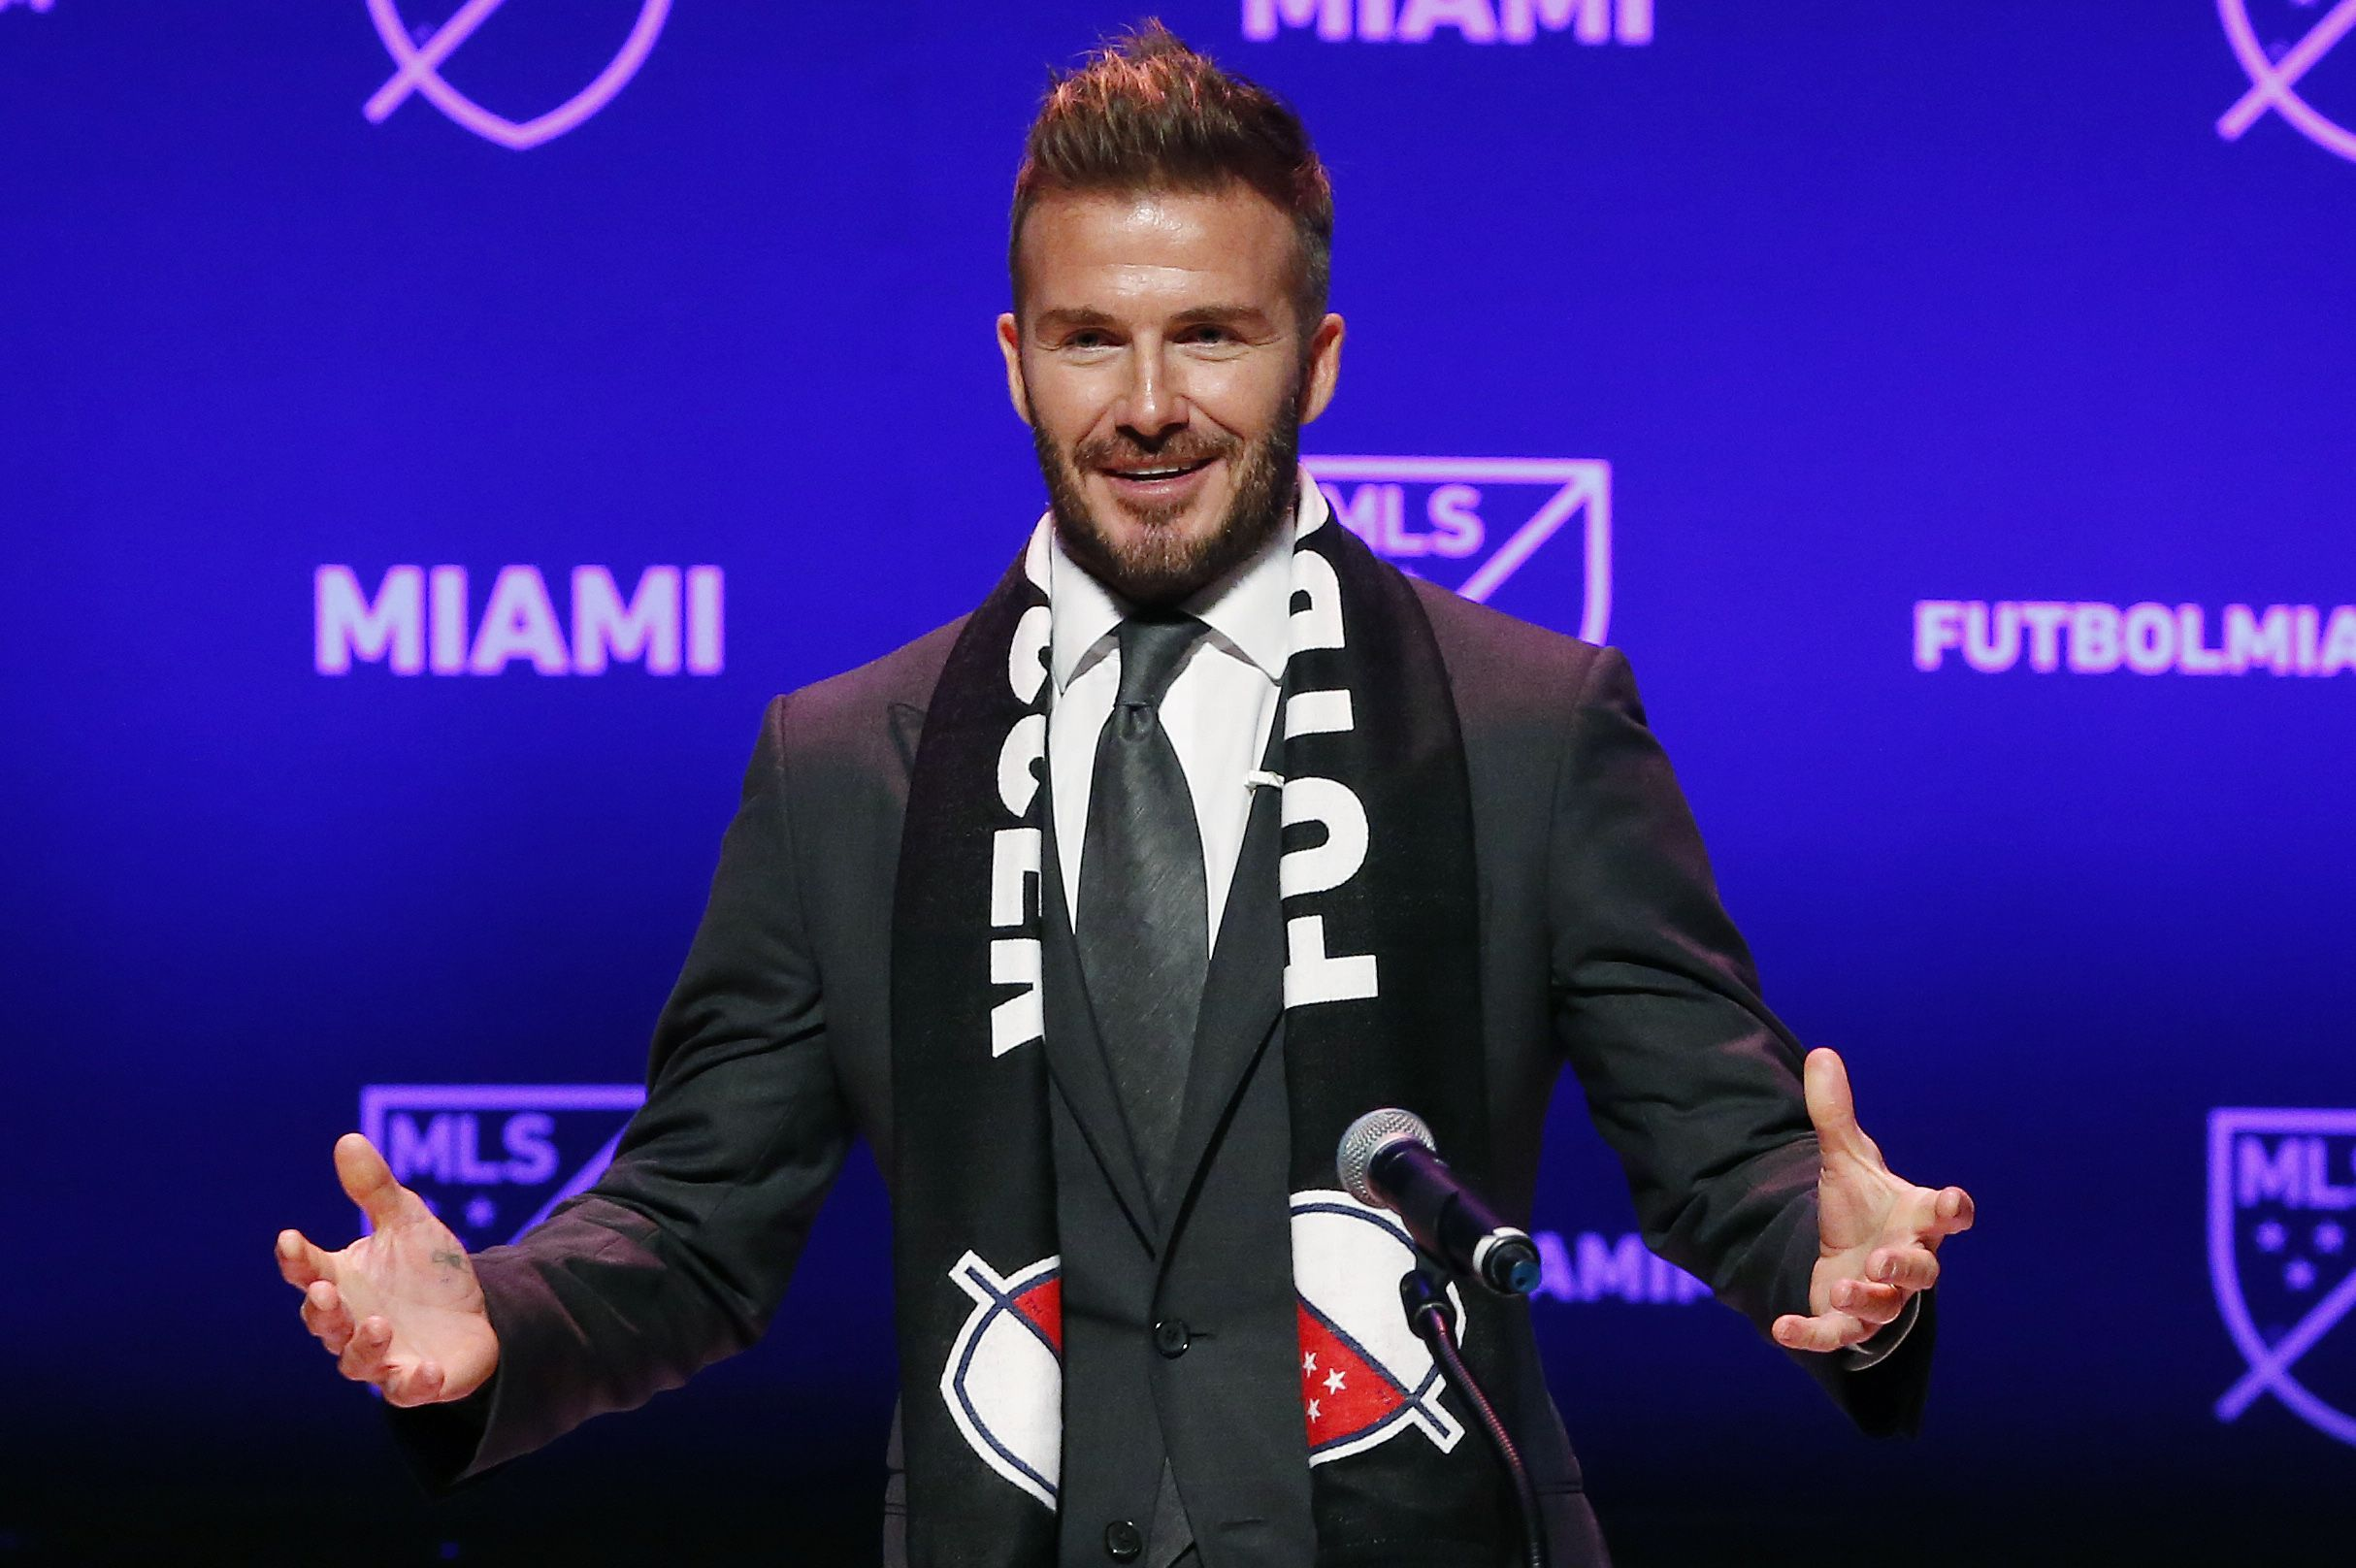 Report Will David Beckhams MLS Team Have To Change Name